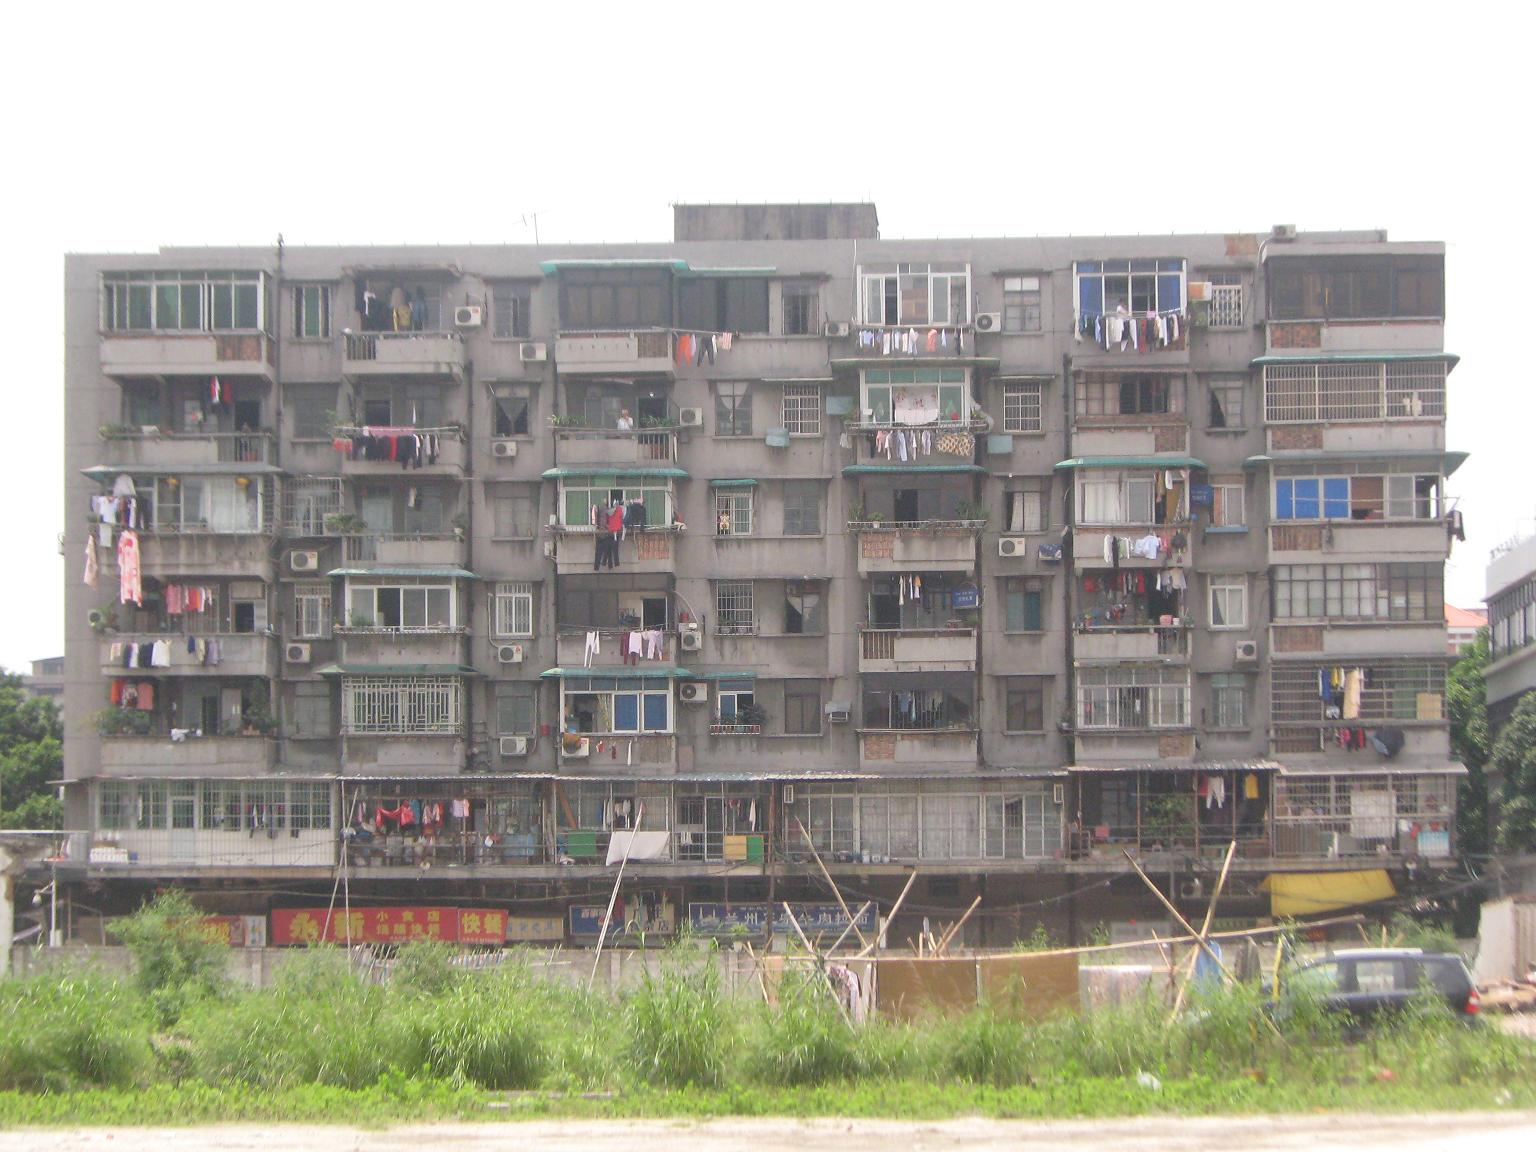 China, Ghetto Apartments.